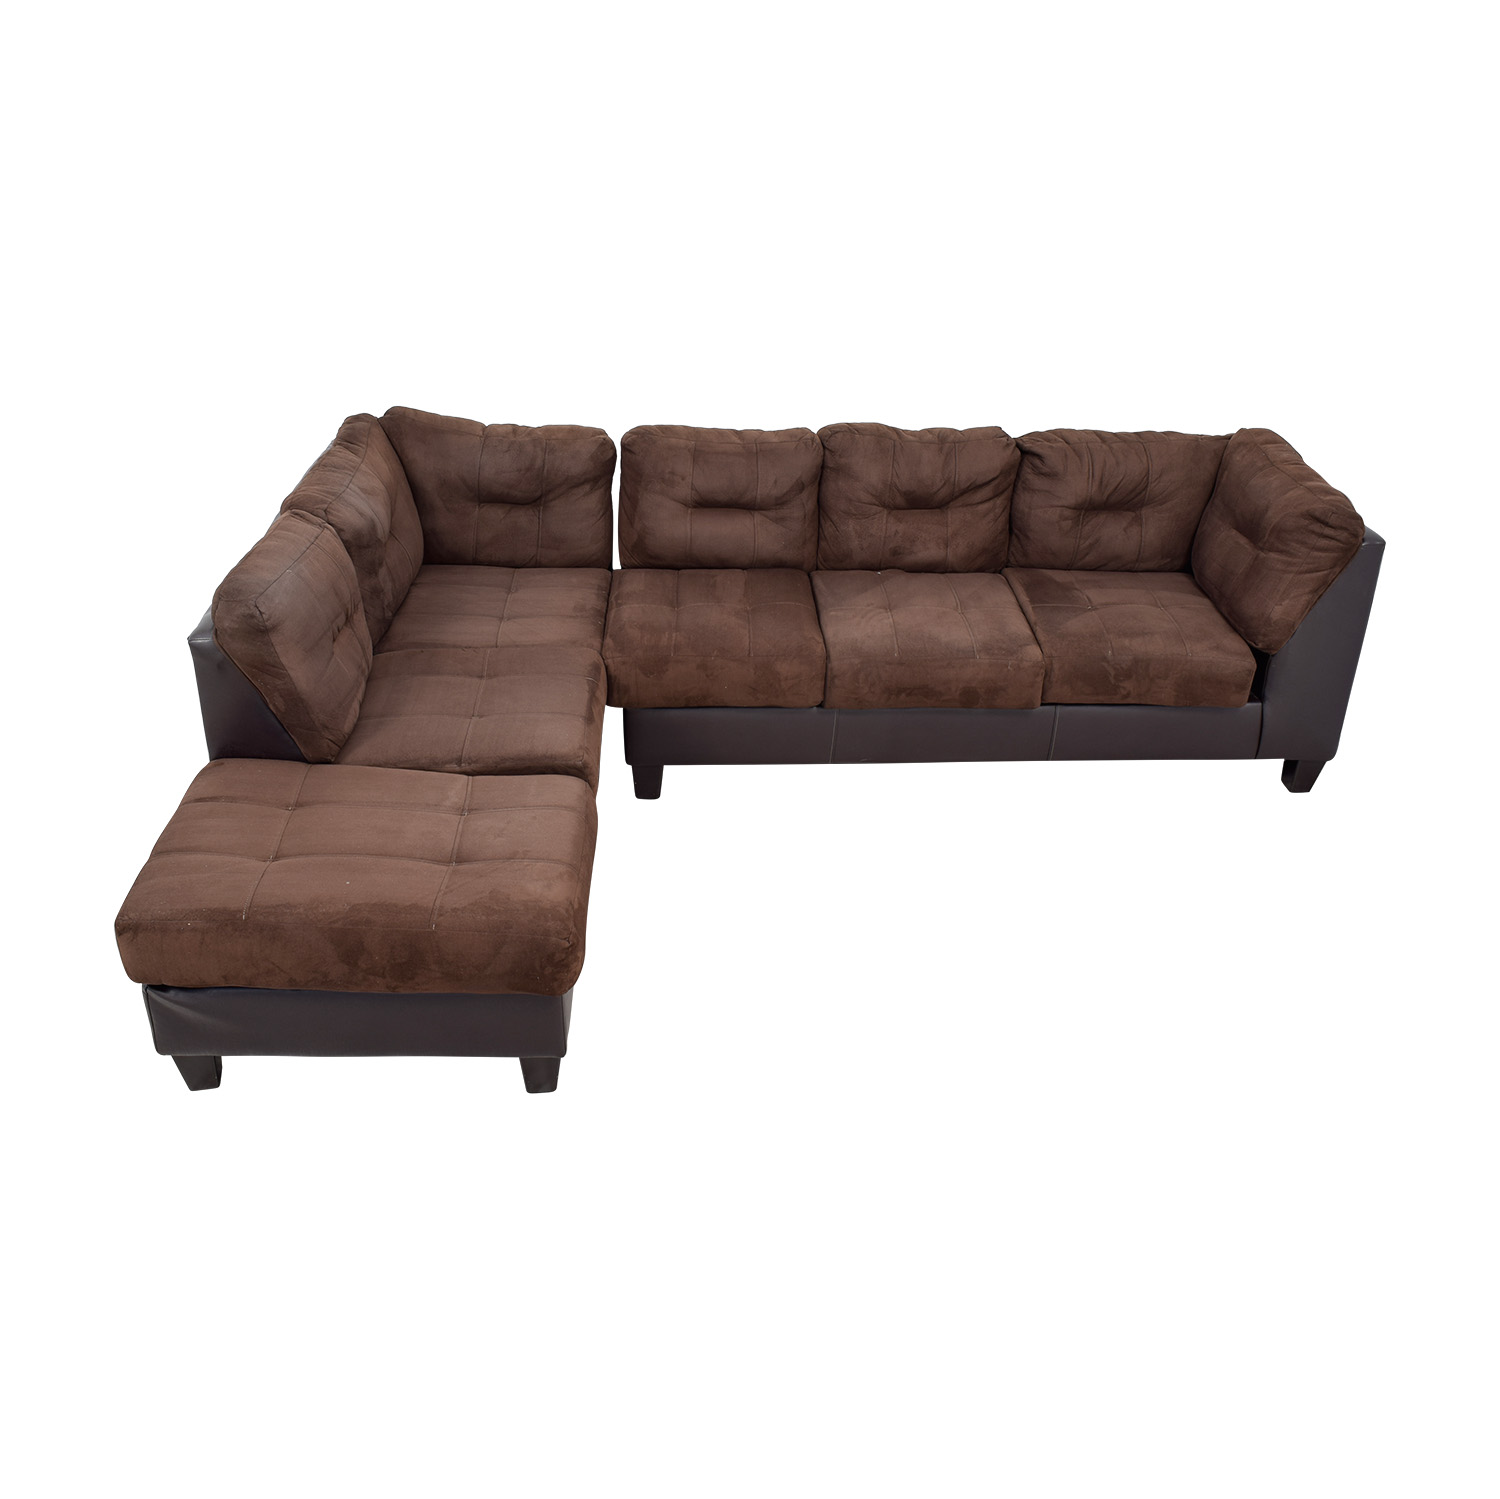 Raymour & Flanigan Brown Tufted  Sectional with Ottoman / Sectionals